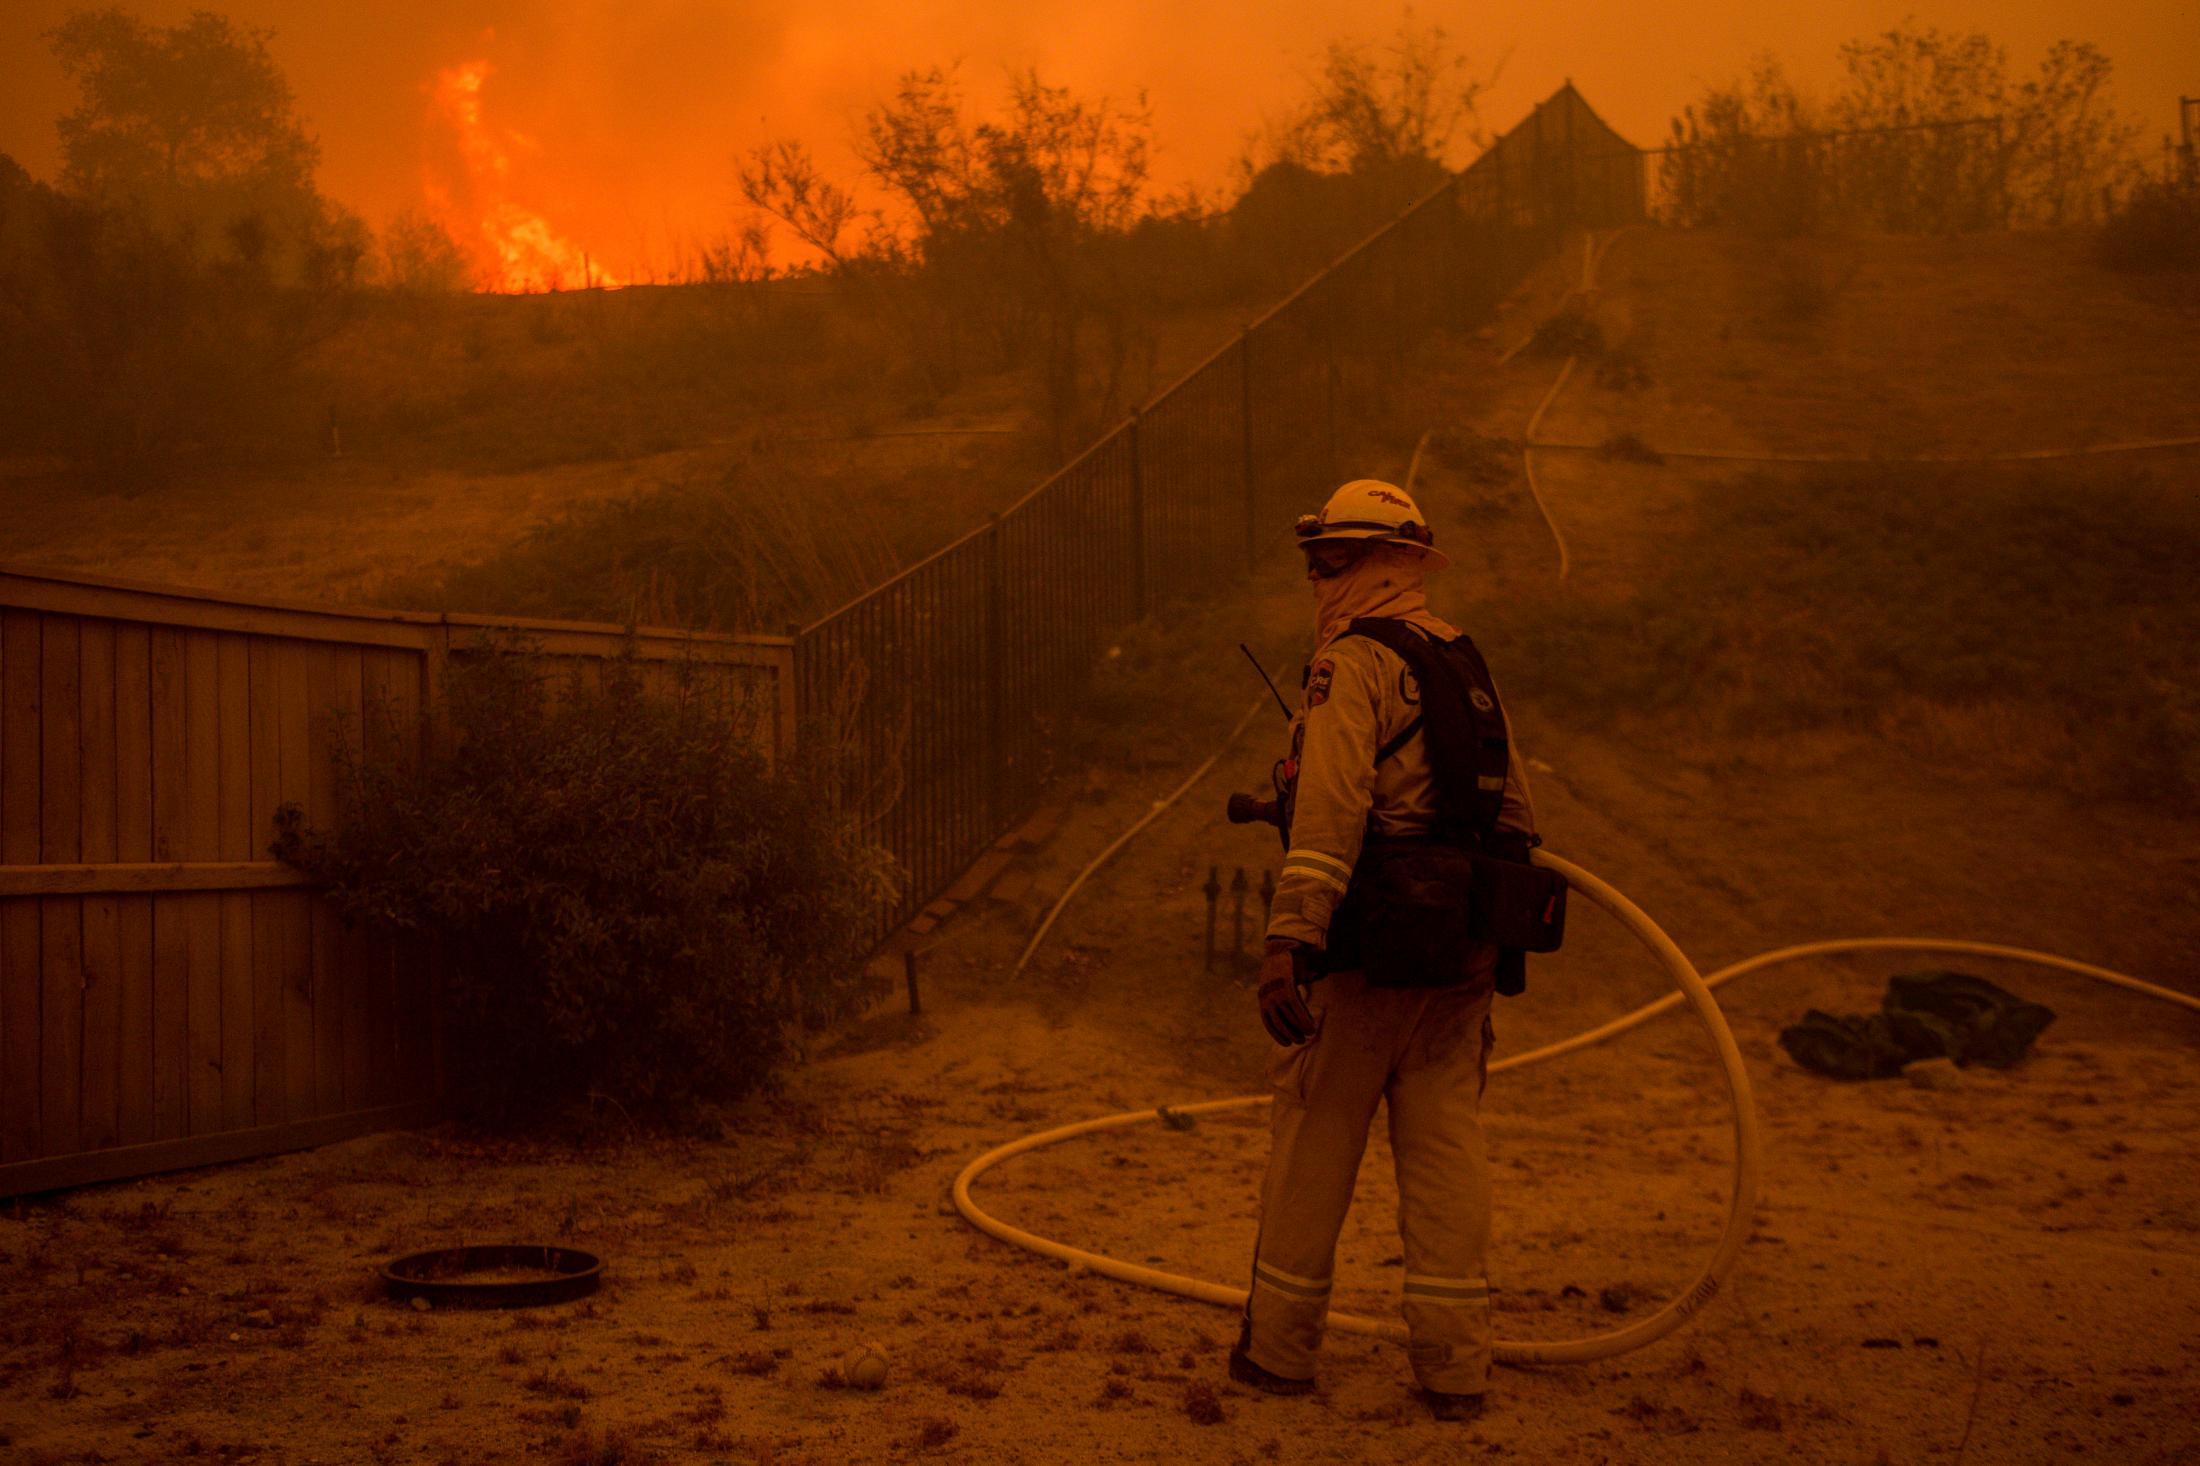 A firefighter carries a house from a fire truck into the backyard of a house, becoming a frontline in the fight of this wildfire.